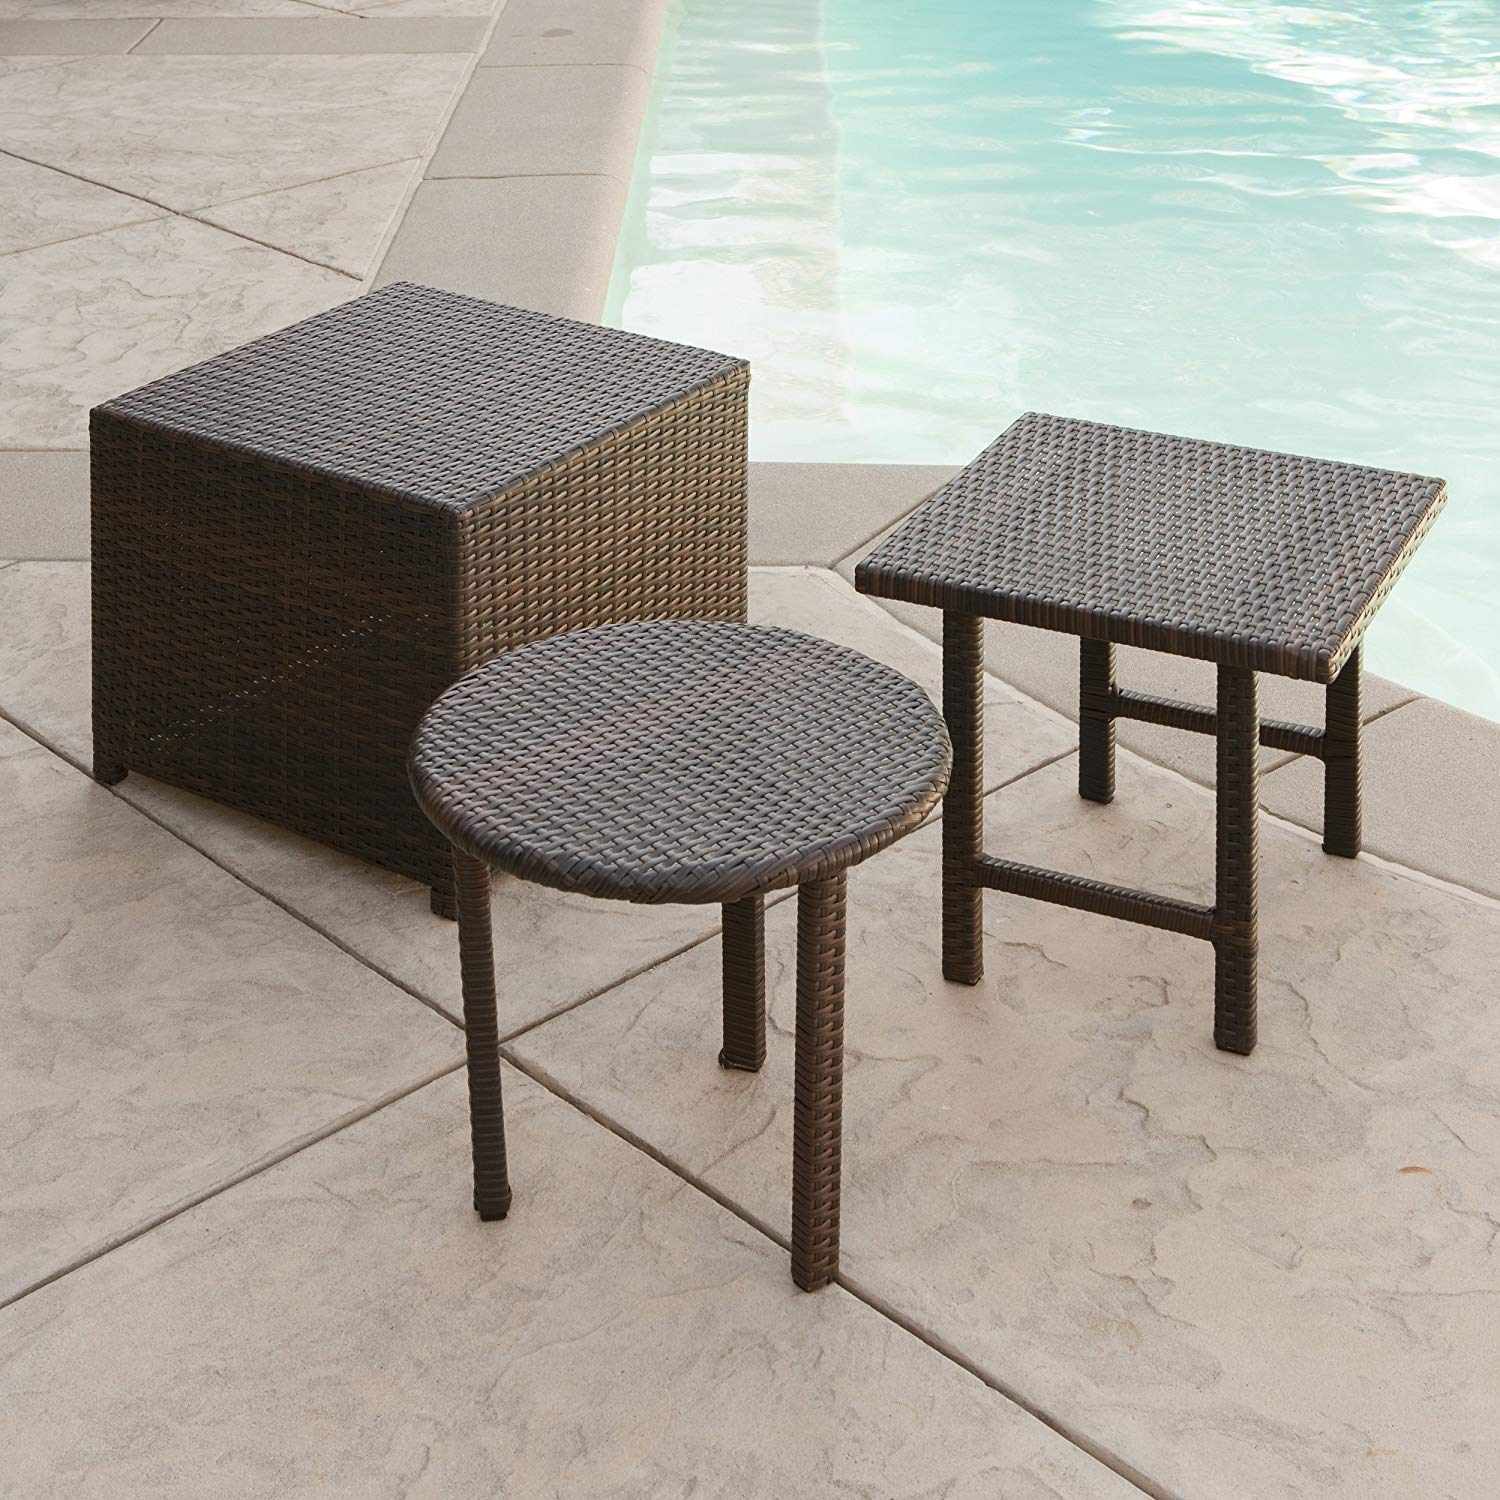 best selling palmilla wicker table set multibrown outdoor side brown patio tables garden round glass top ballard designs chair cushions stained standing lamp nautical pendant